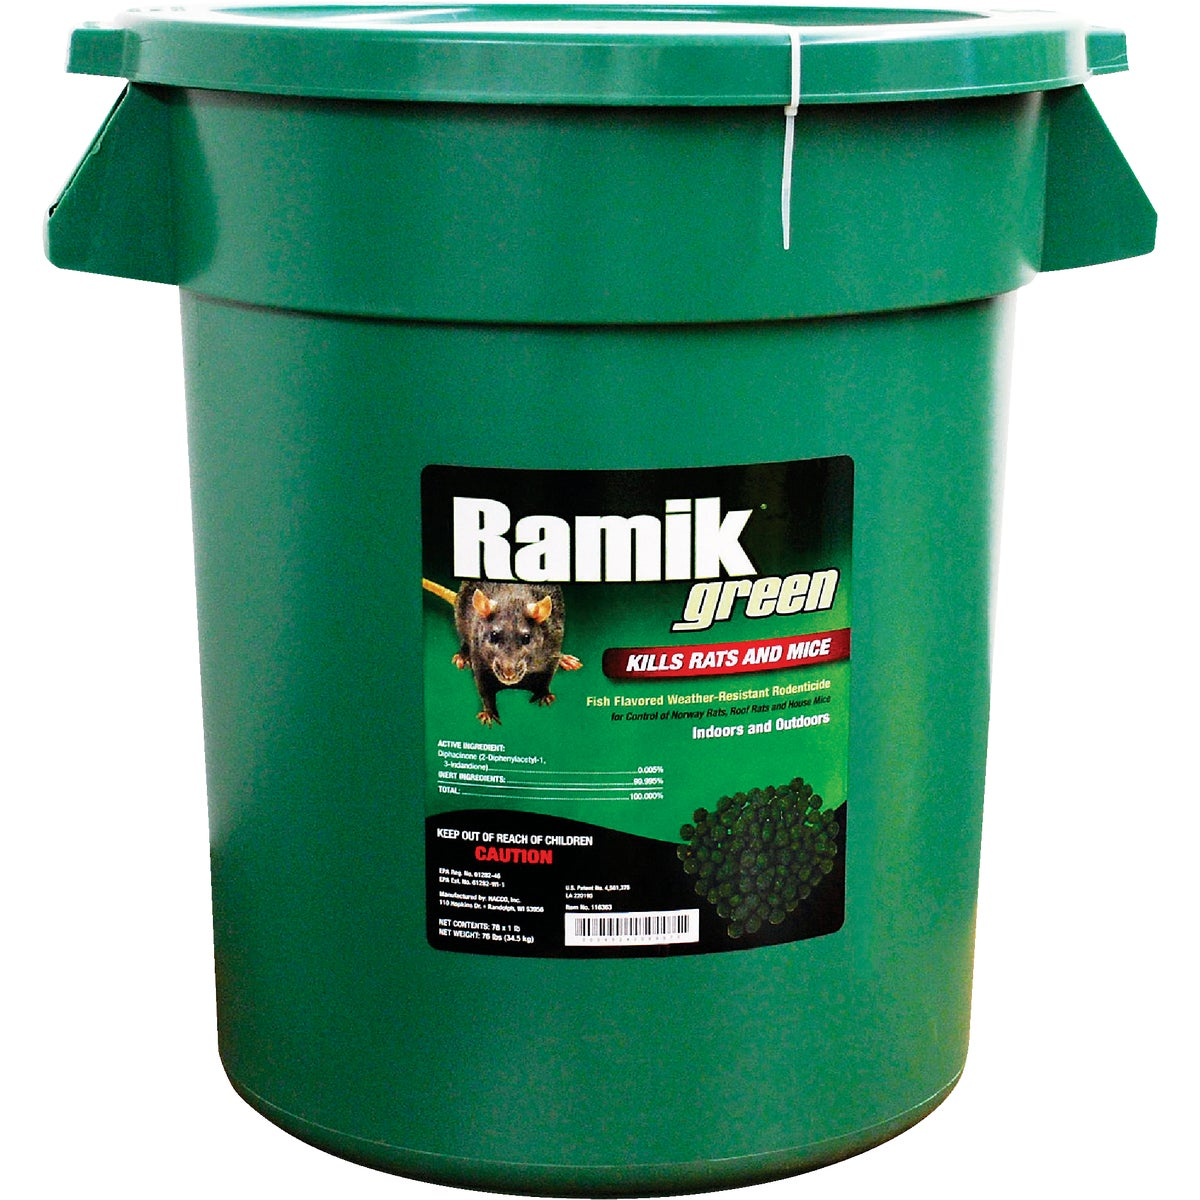 Item 708737, Controls Norway rats, roof rats, and house mice. Moisture-resistant pellets. This product may only be used inside and within 50 Ft.